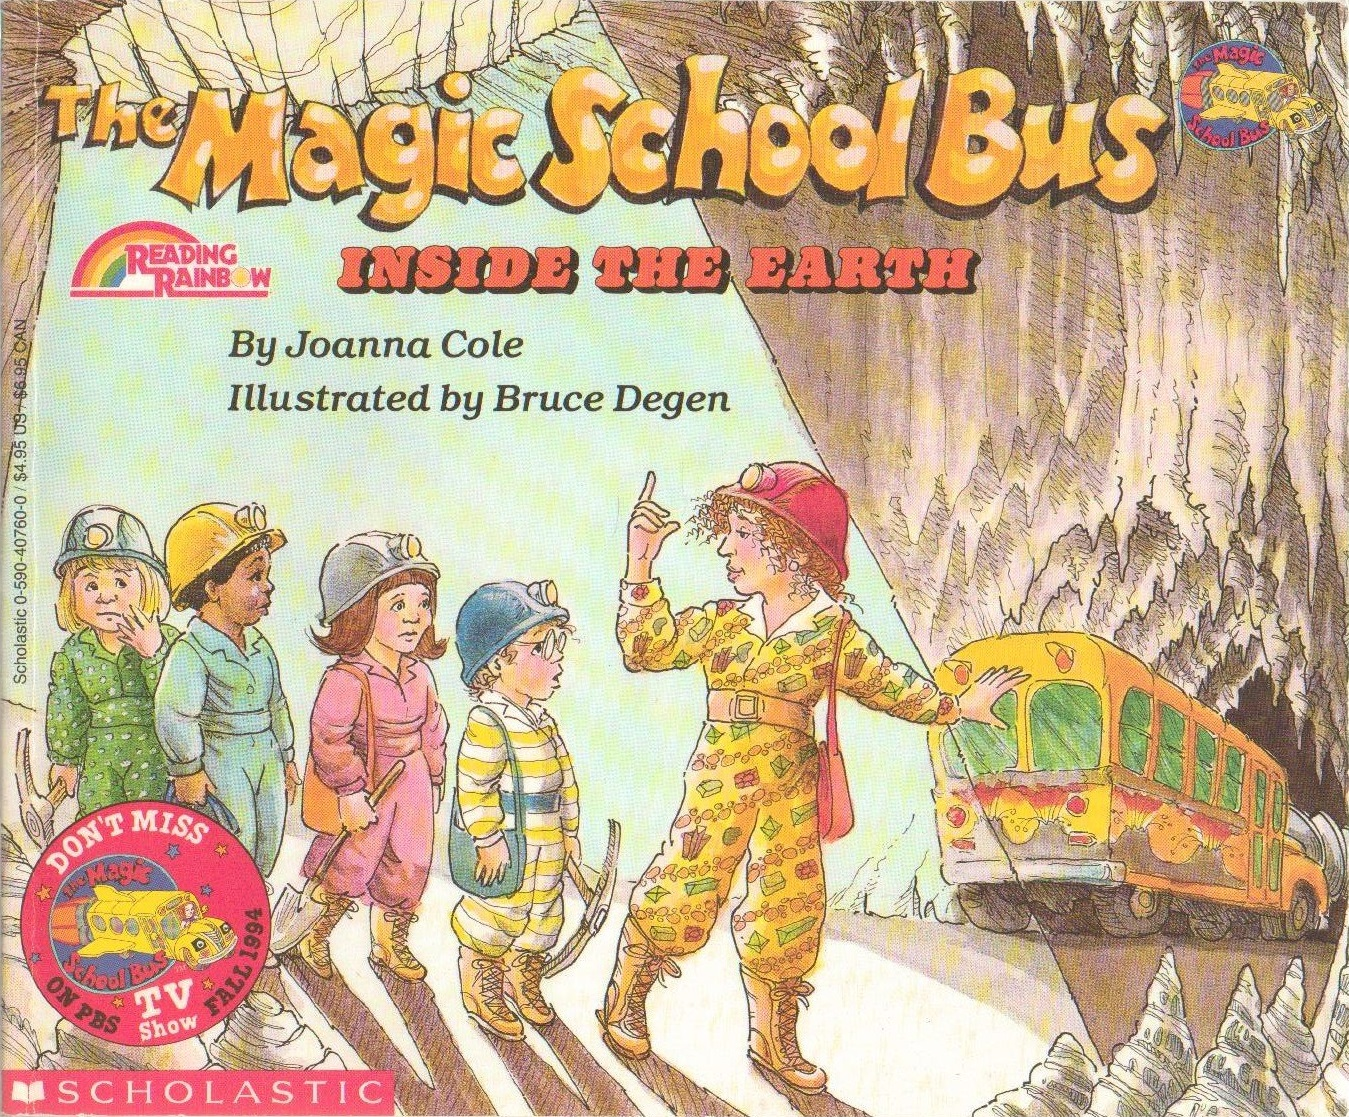 Phoebe terese magic school bus